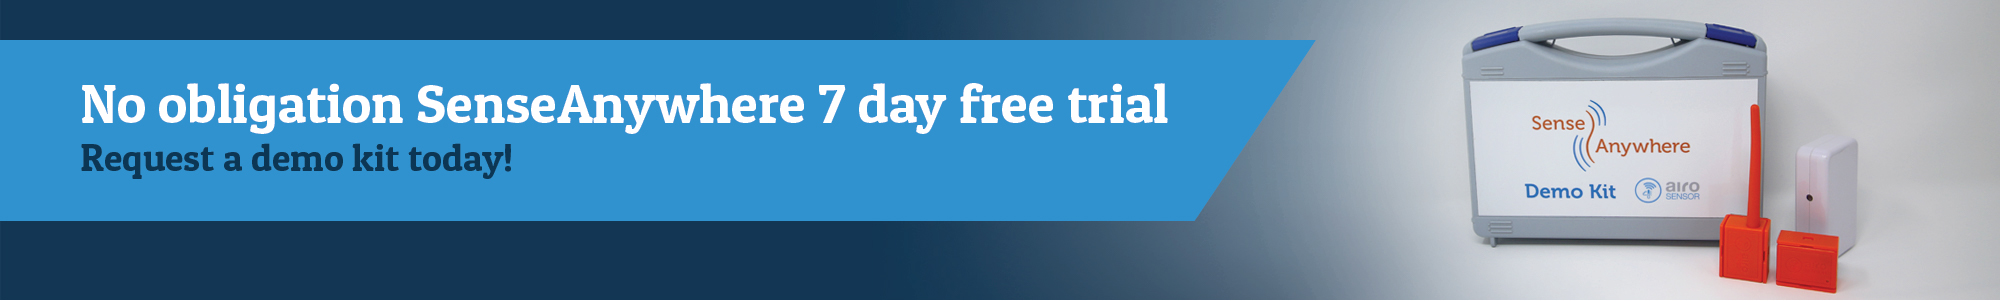 7 day free trial of SenseAnywhere AiroSensor